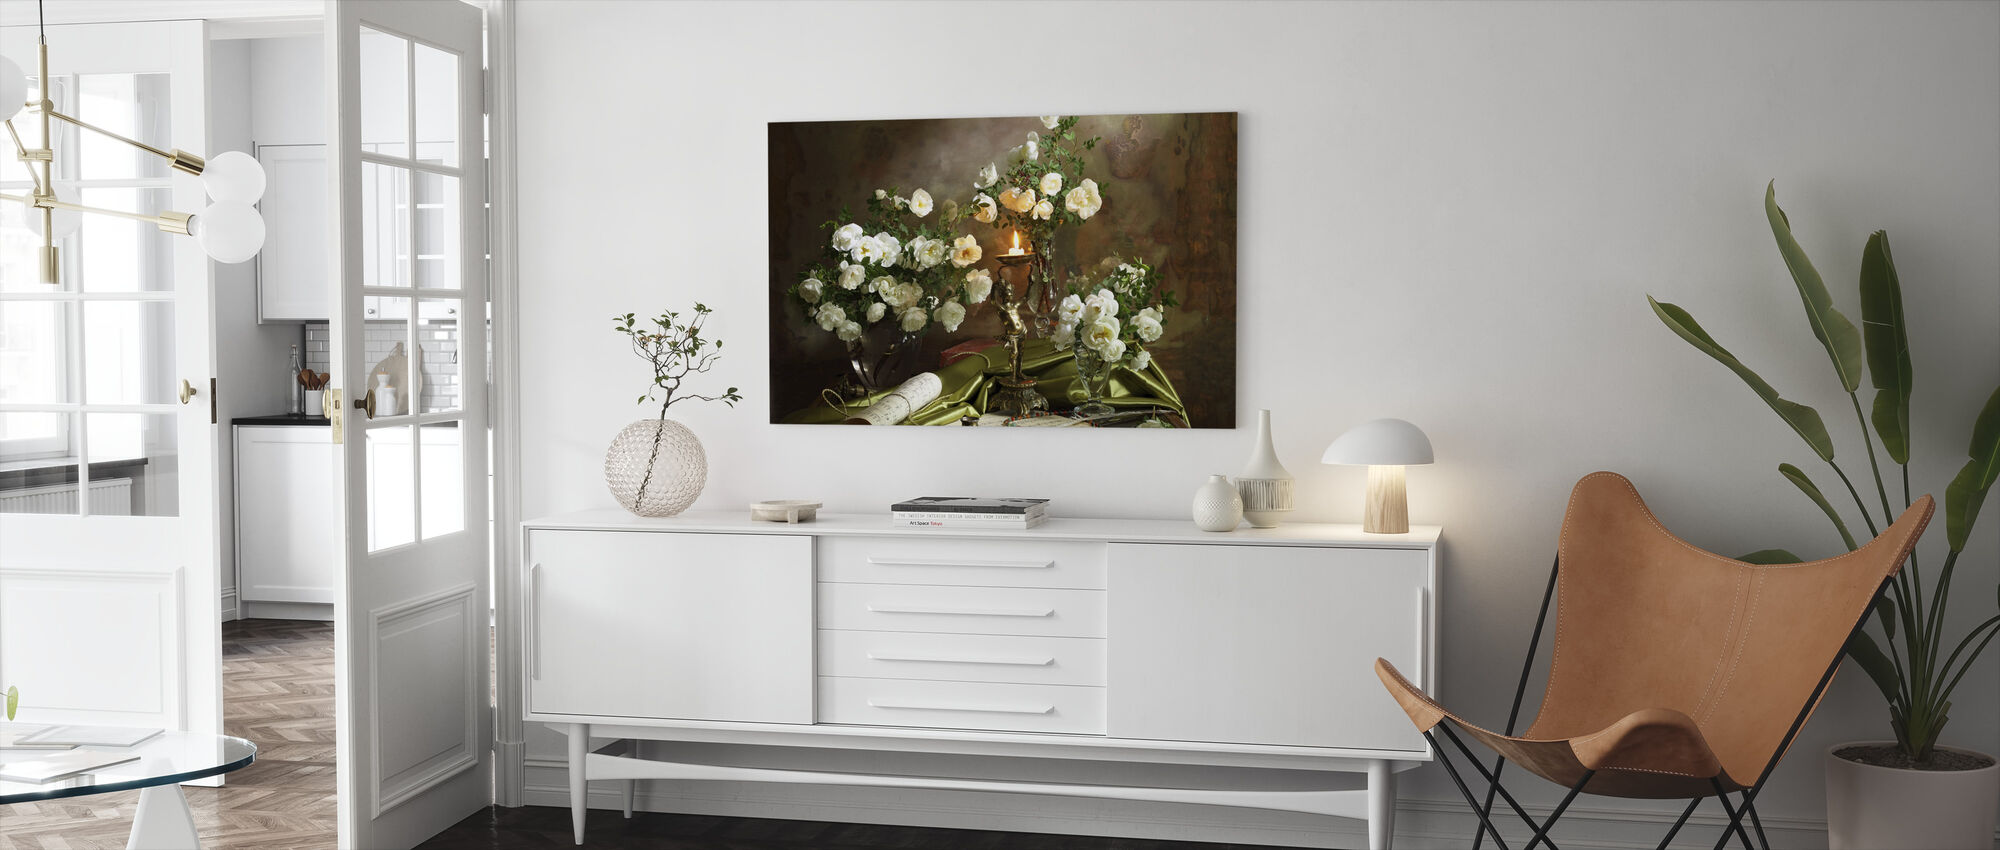 Still Life with Roses and Candle - Canvas print - Living Room